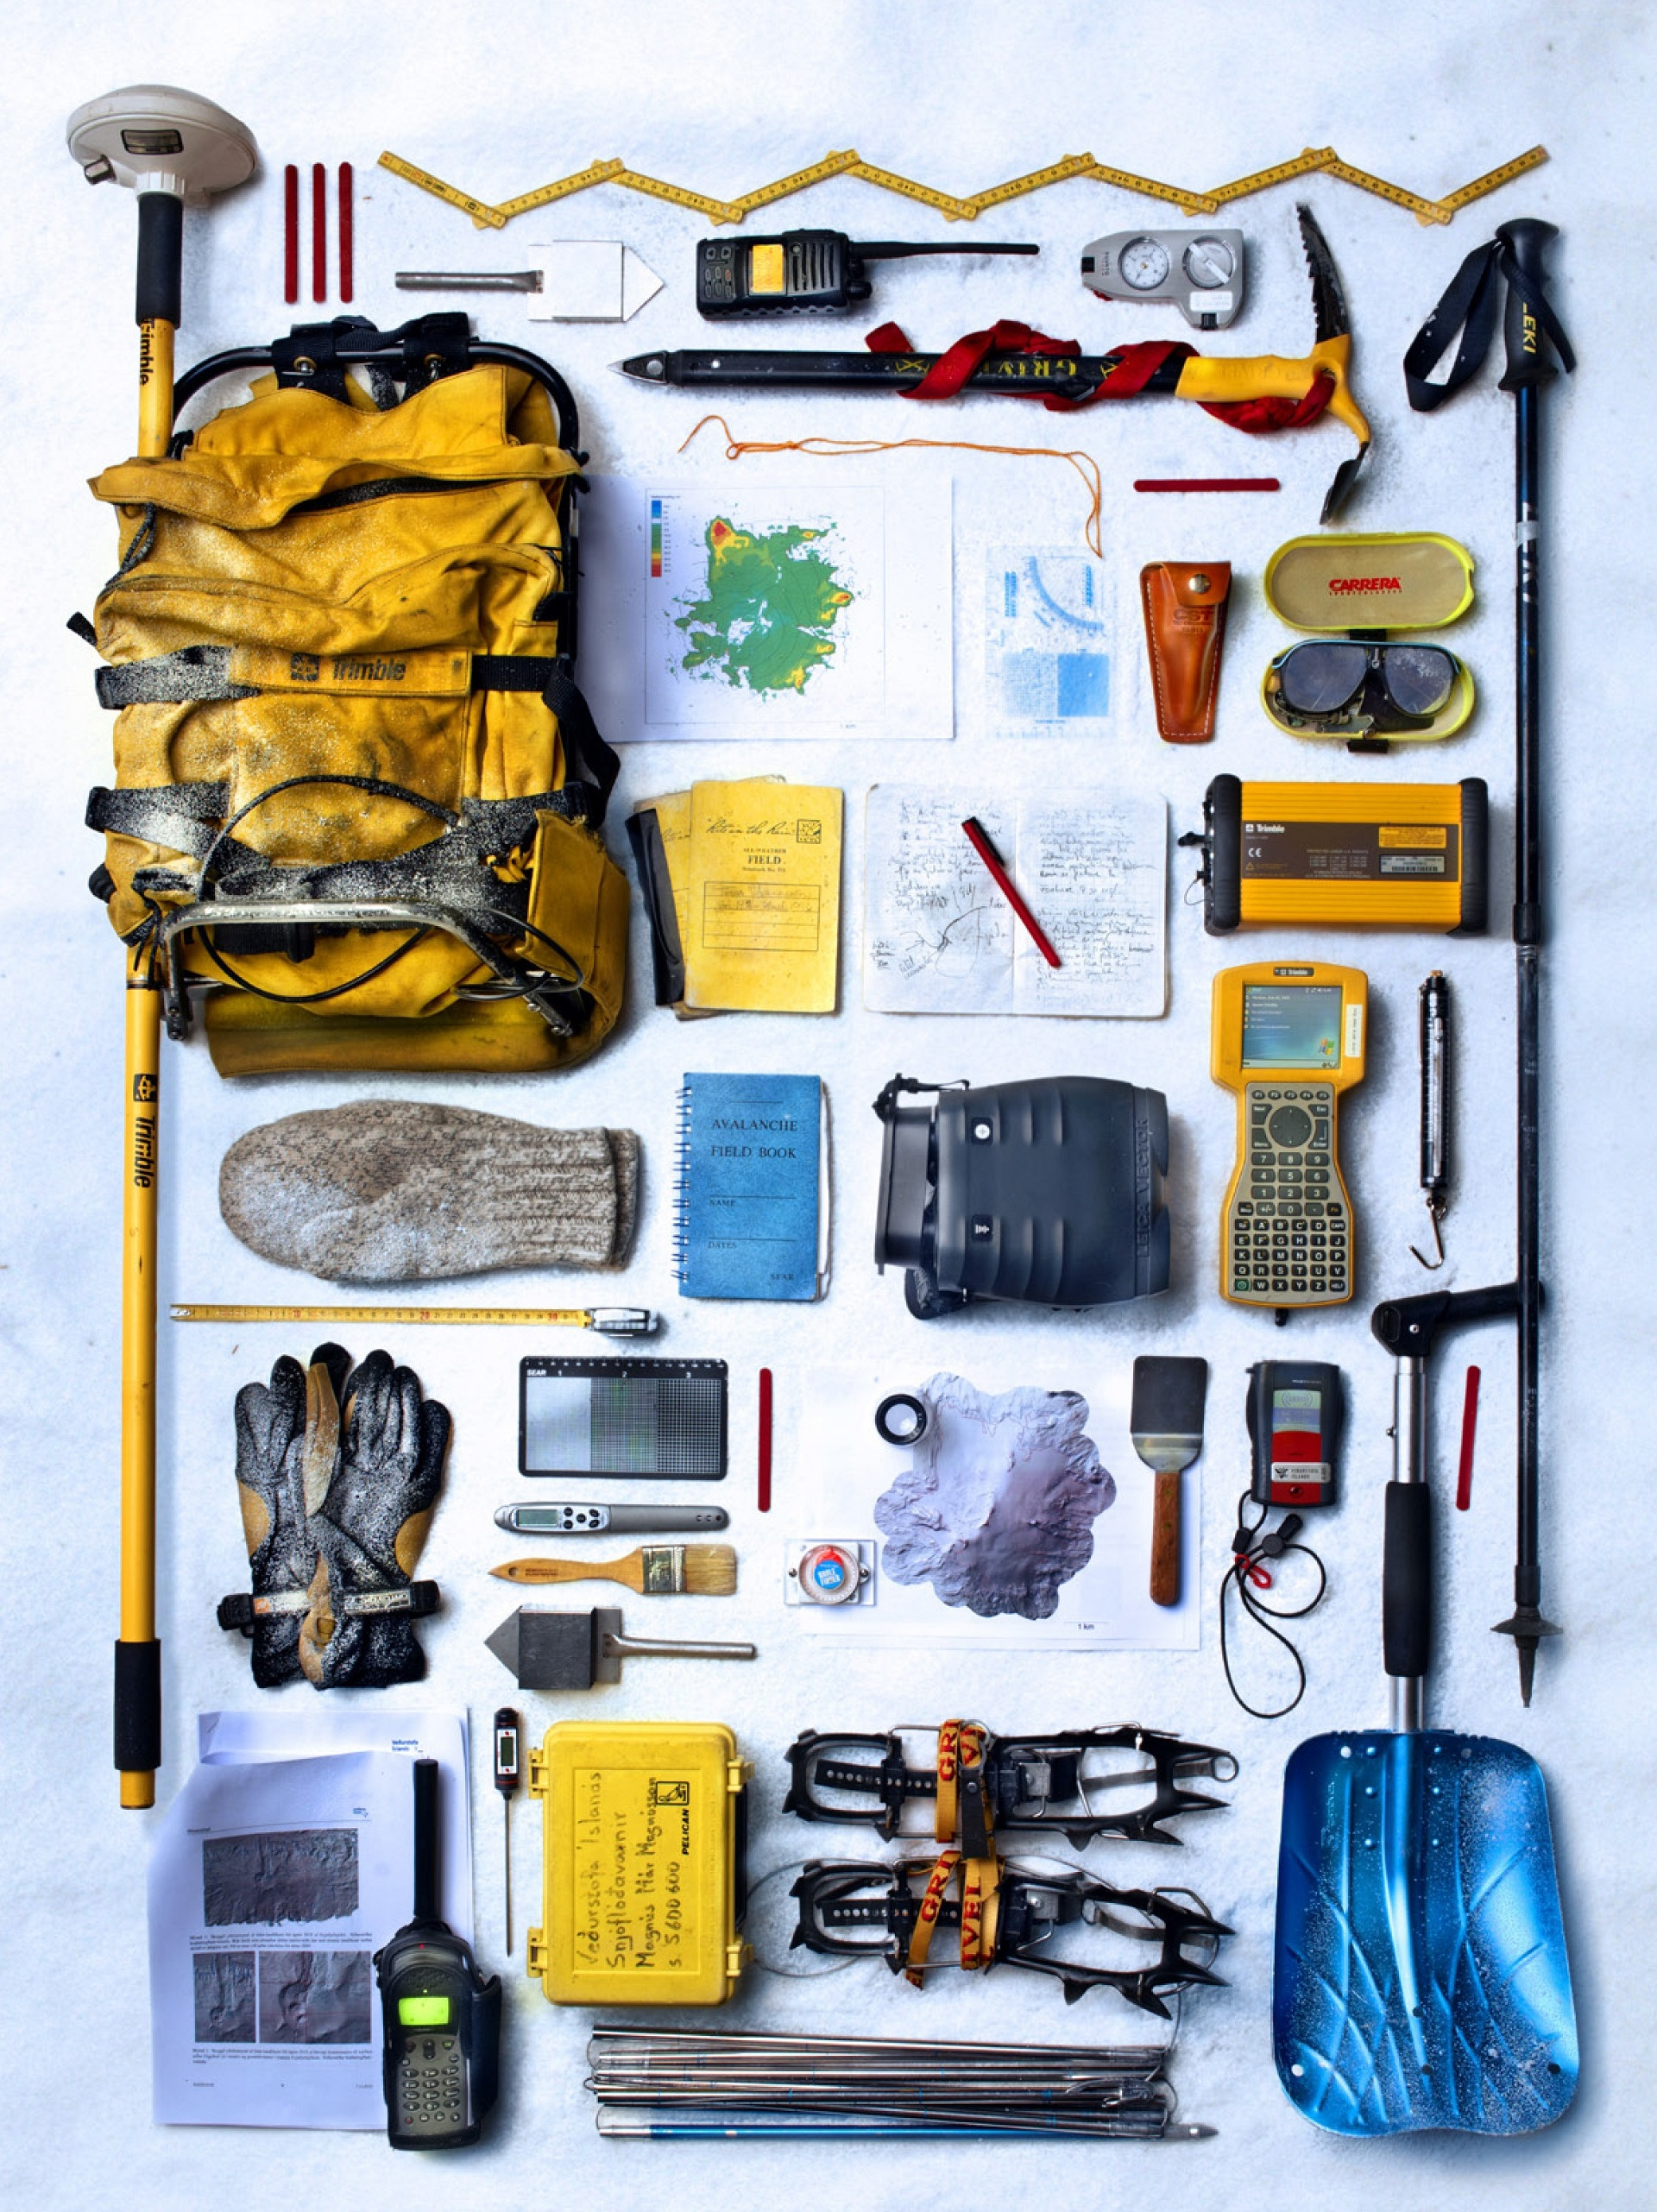 Field equipment and instruments used for glaciological research.